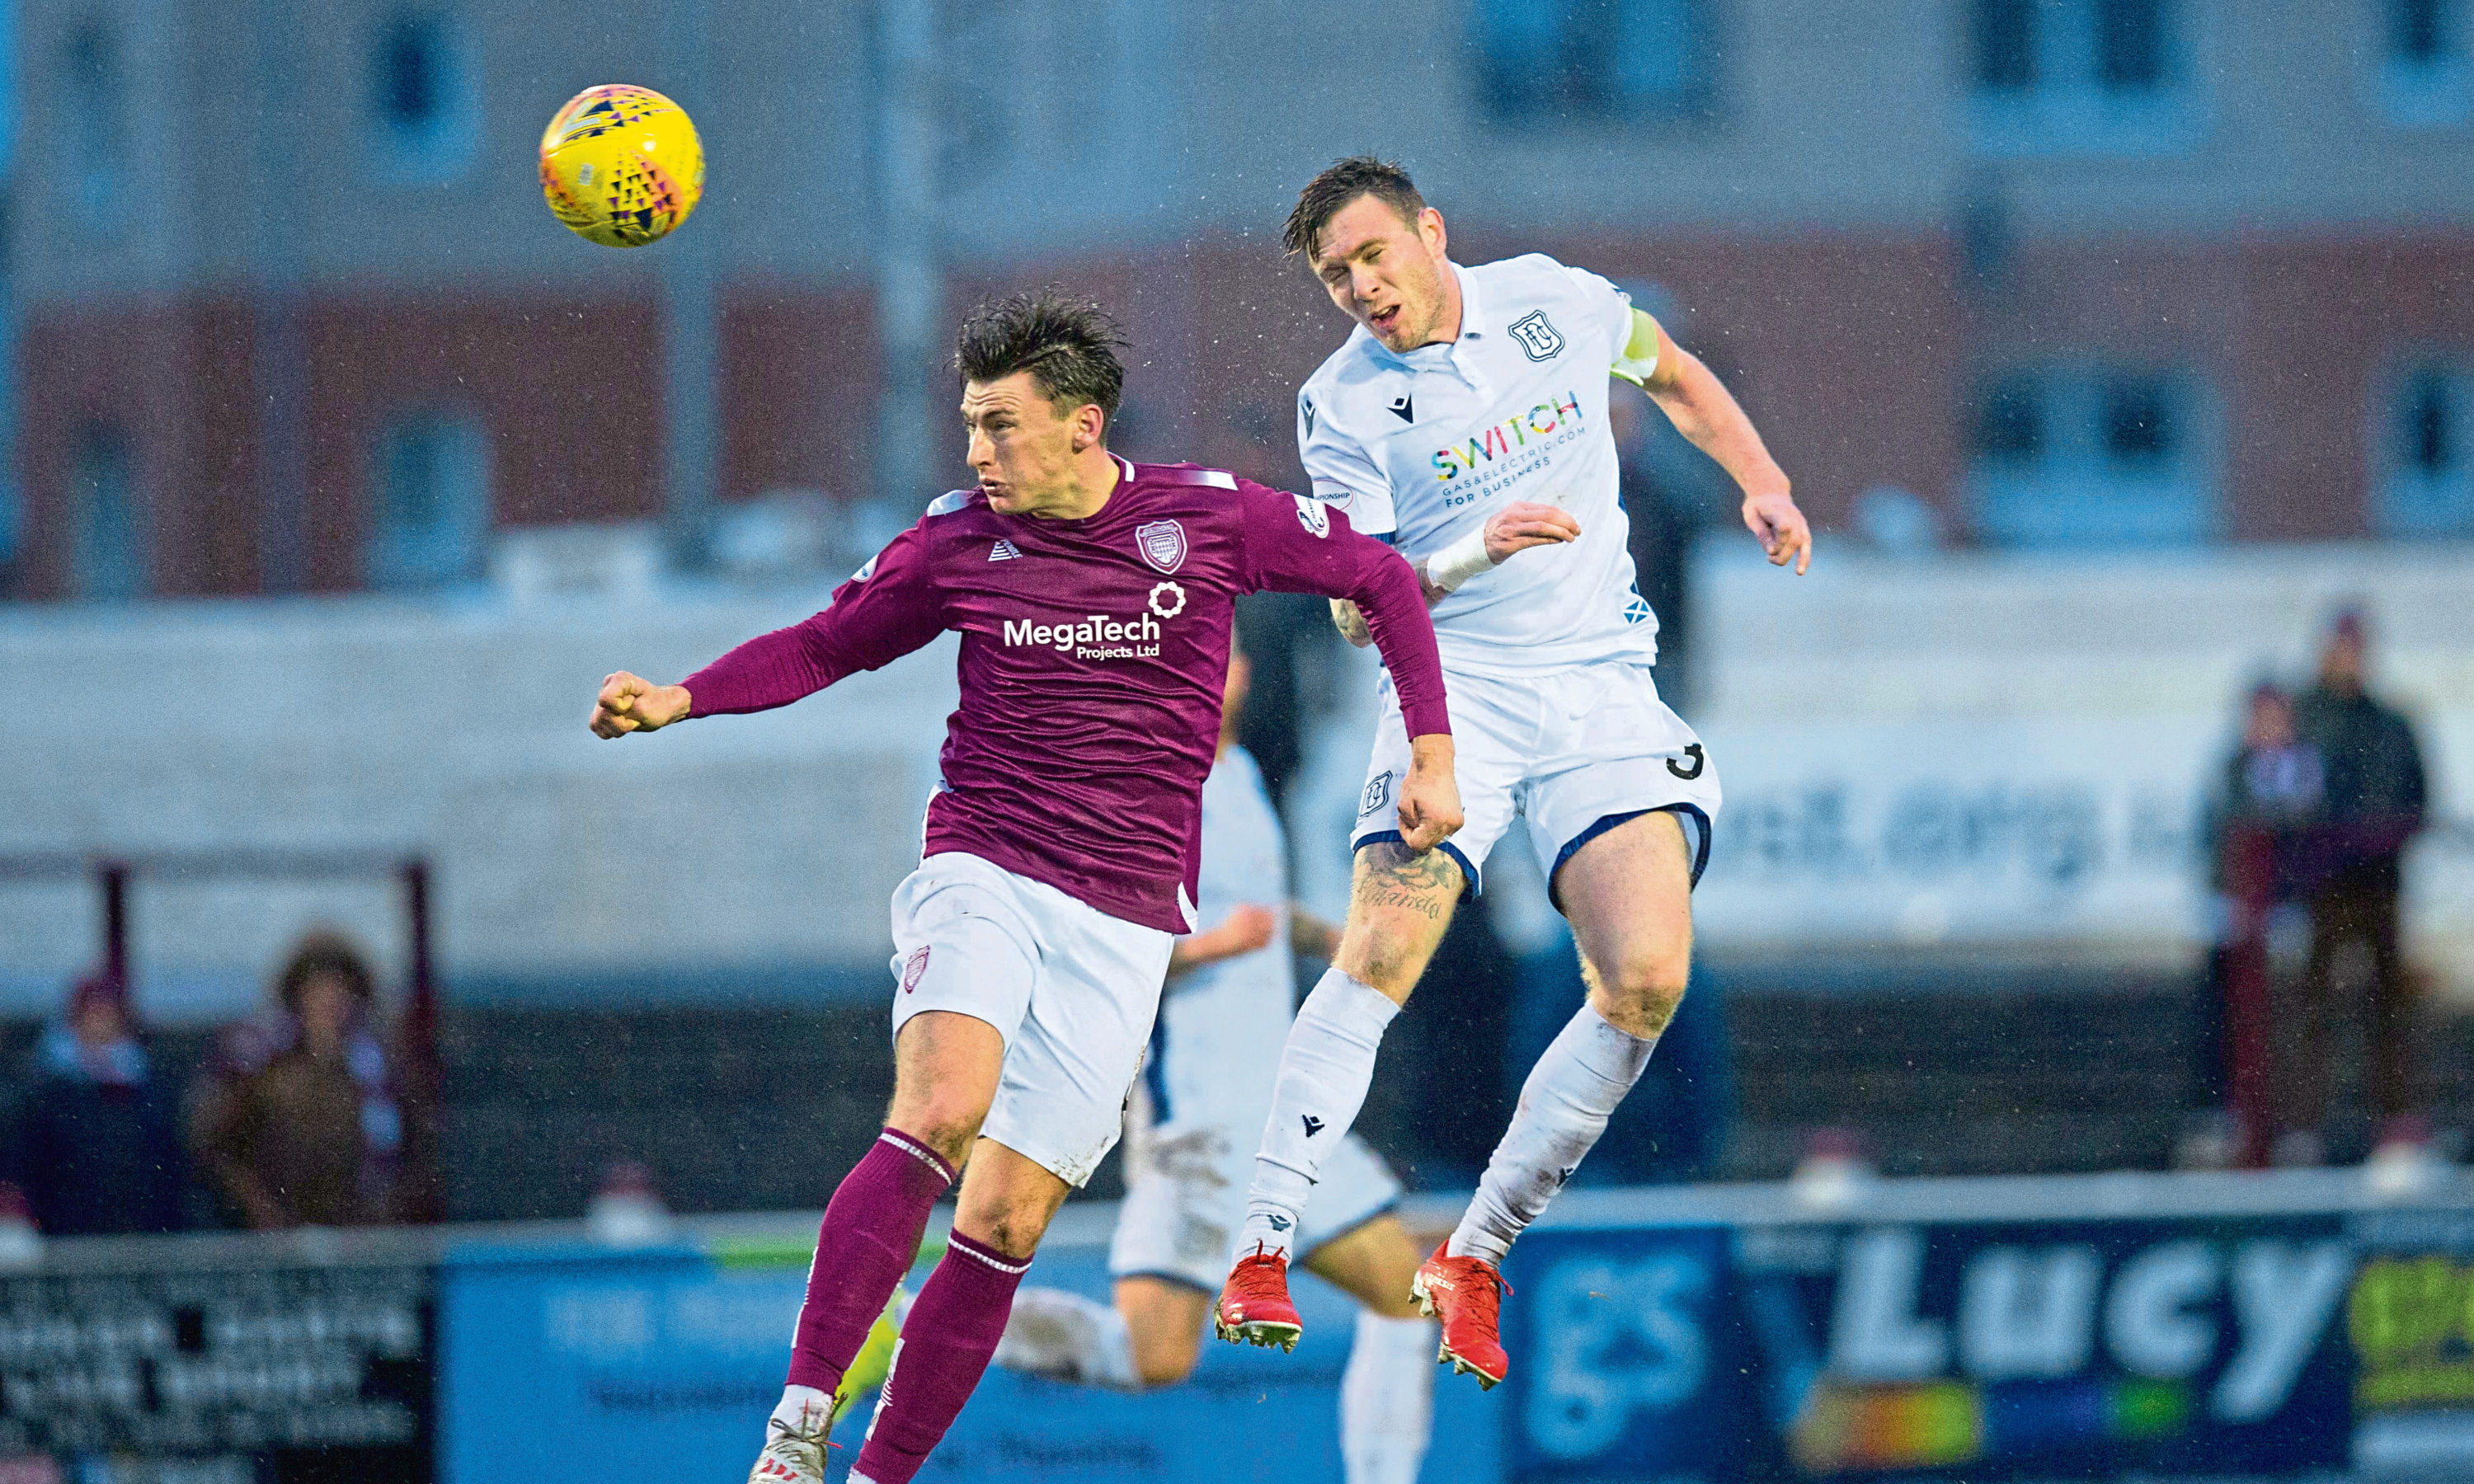 Dundee's Jordan McGhee competes in the air with Michael McKenna of Arbroath at Gayfield on Saturday.